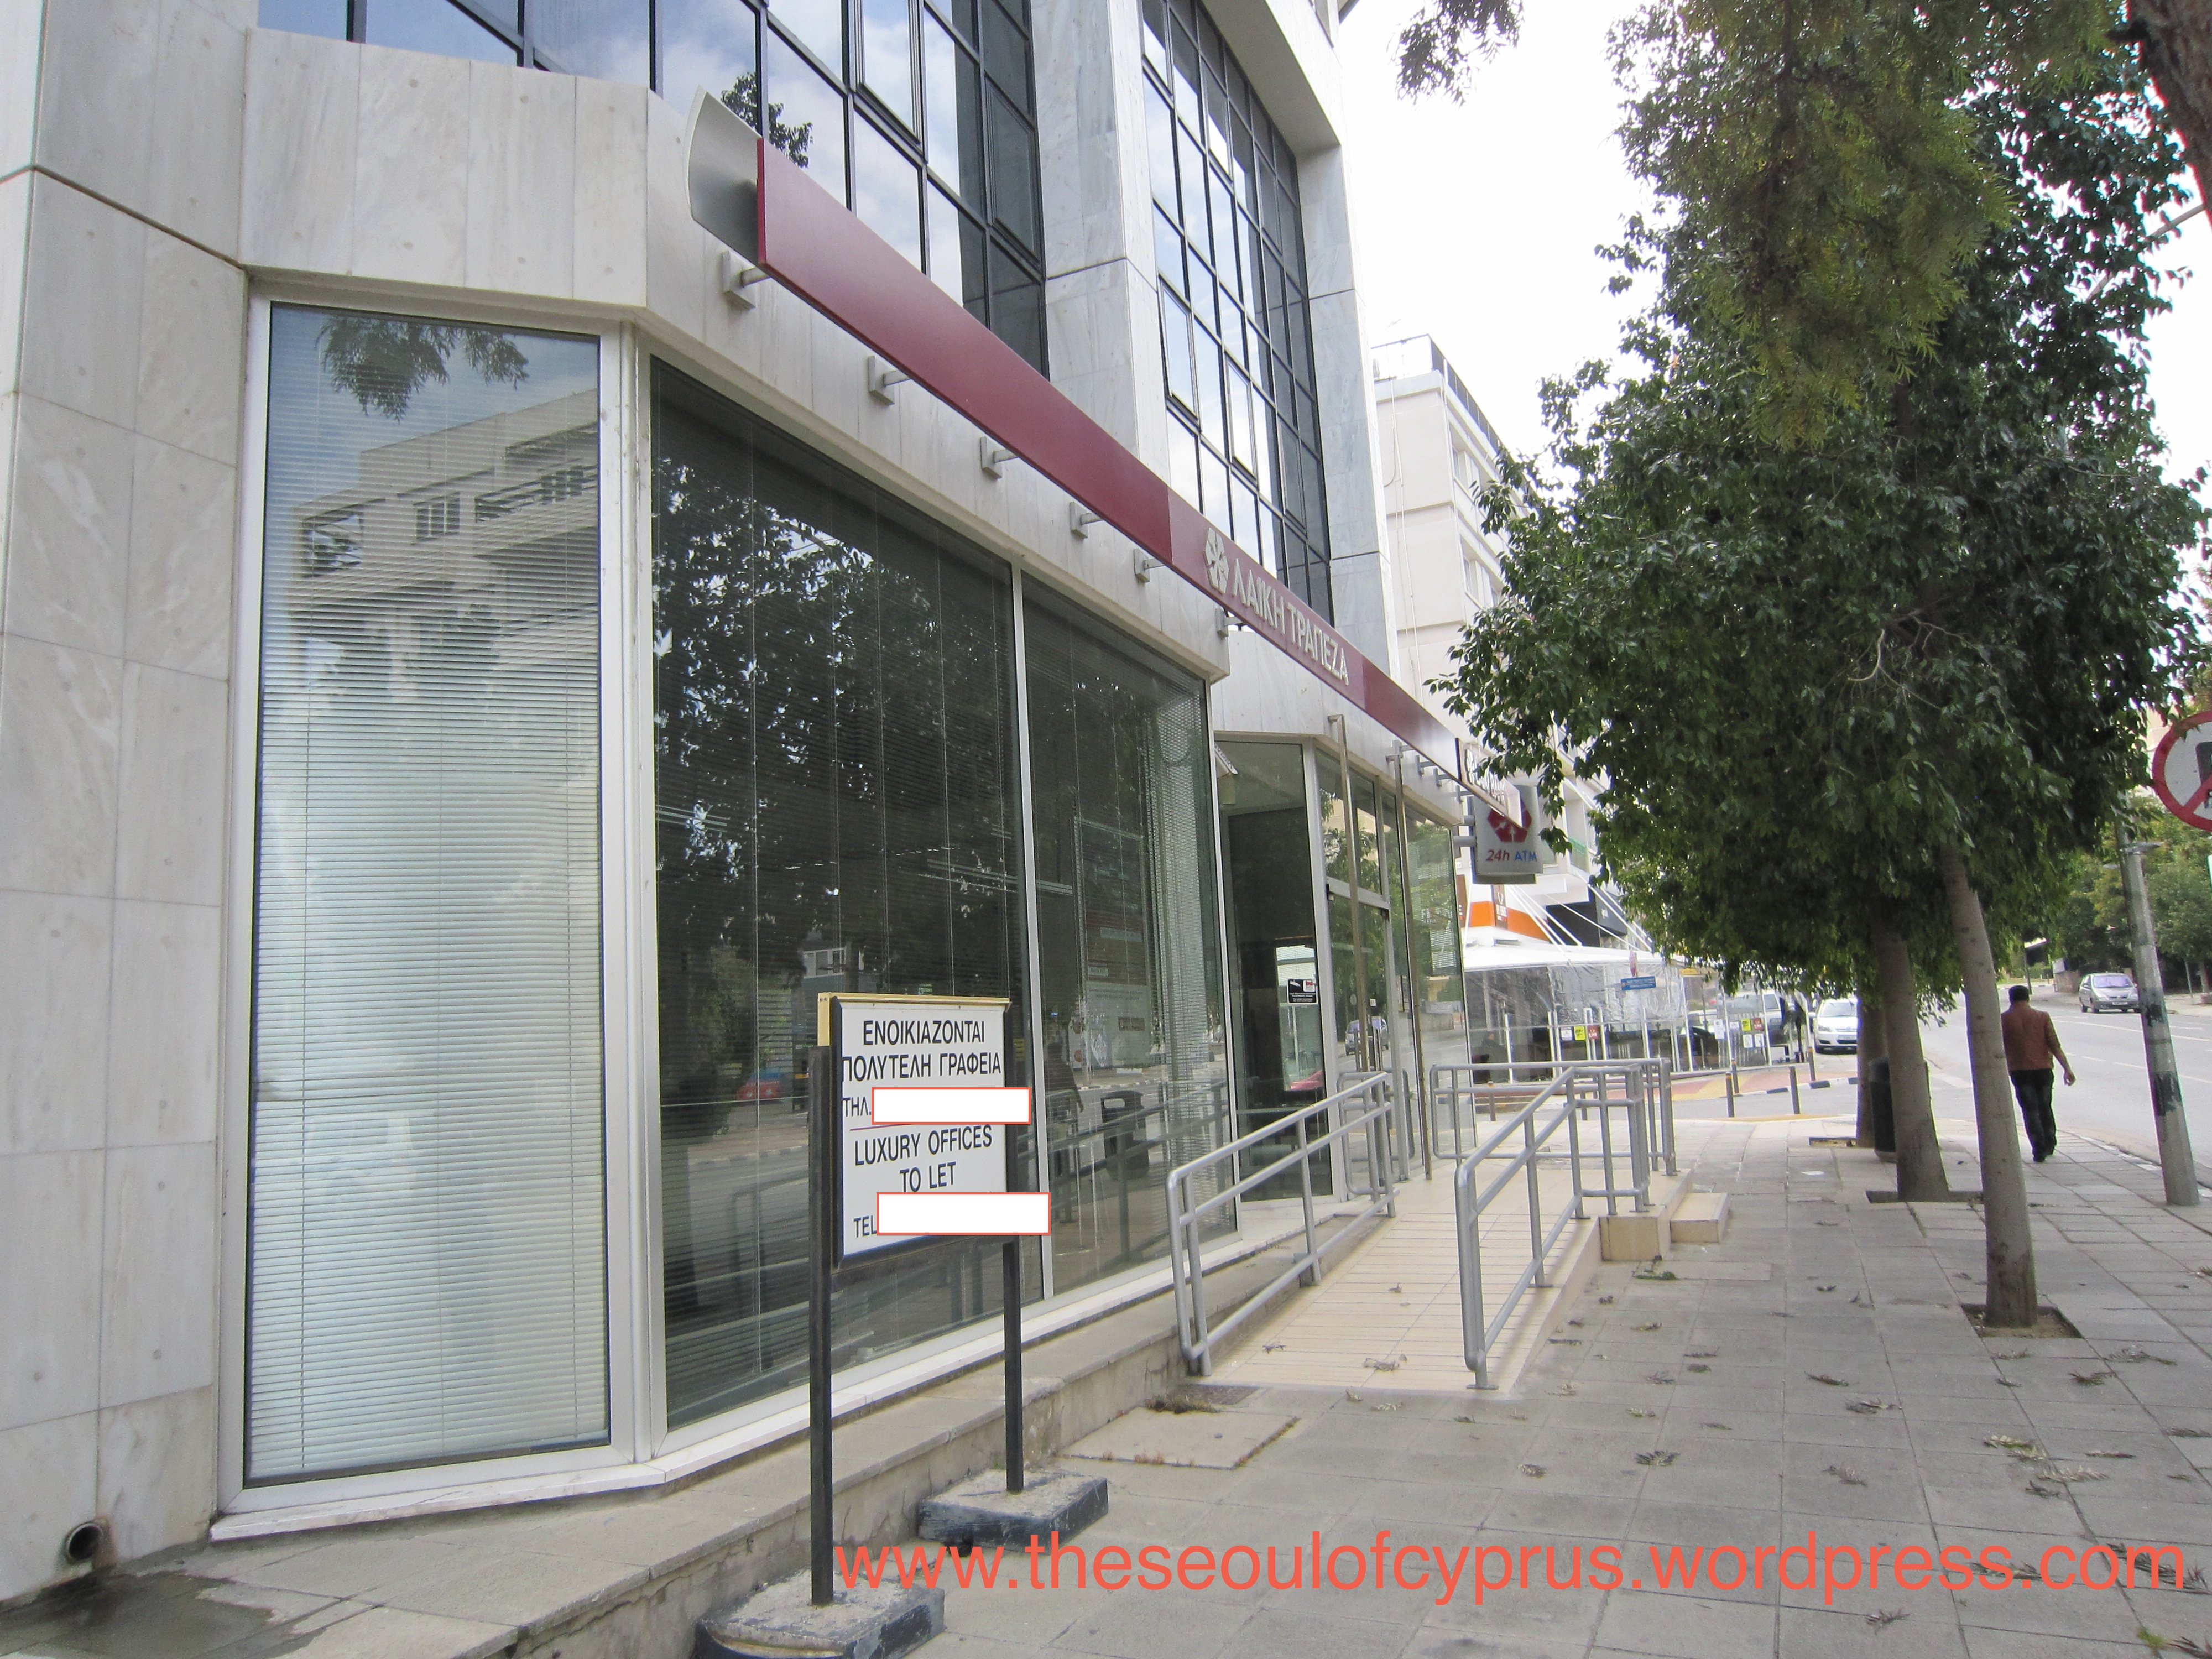 Yesterday Laiki Banks Put Up For Lease Signs